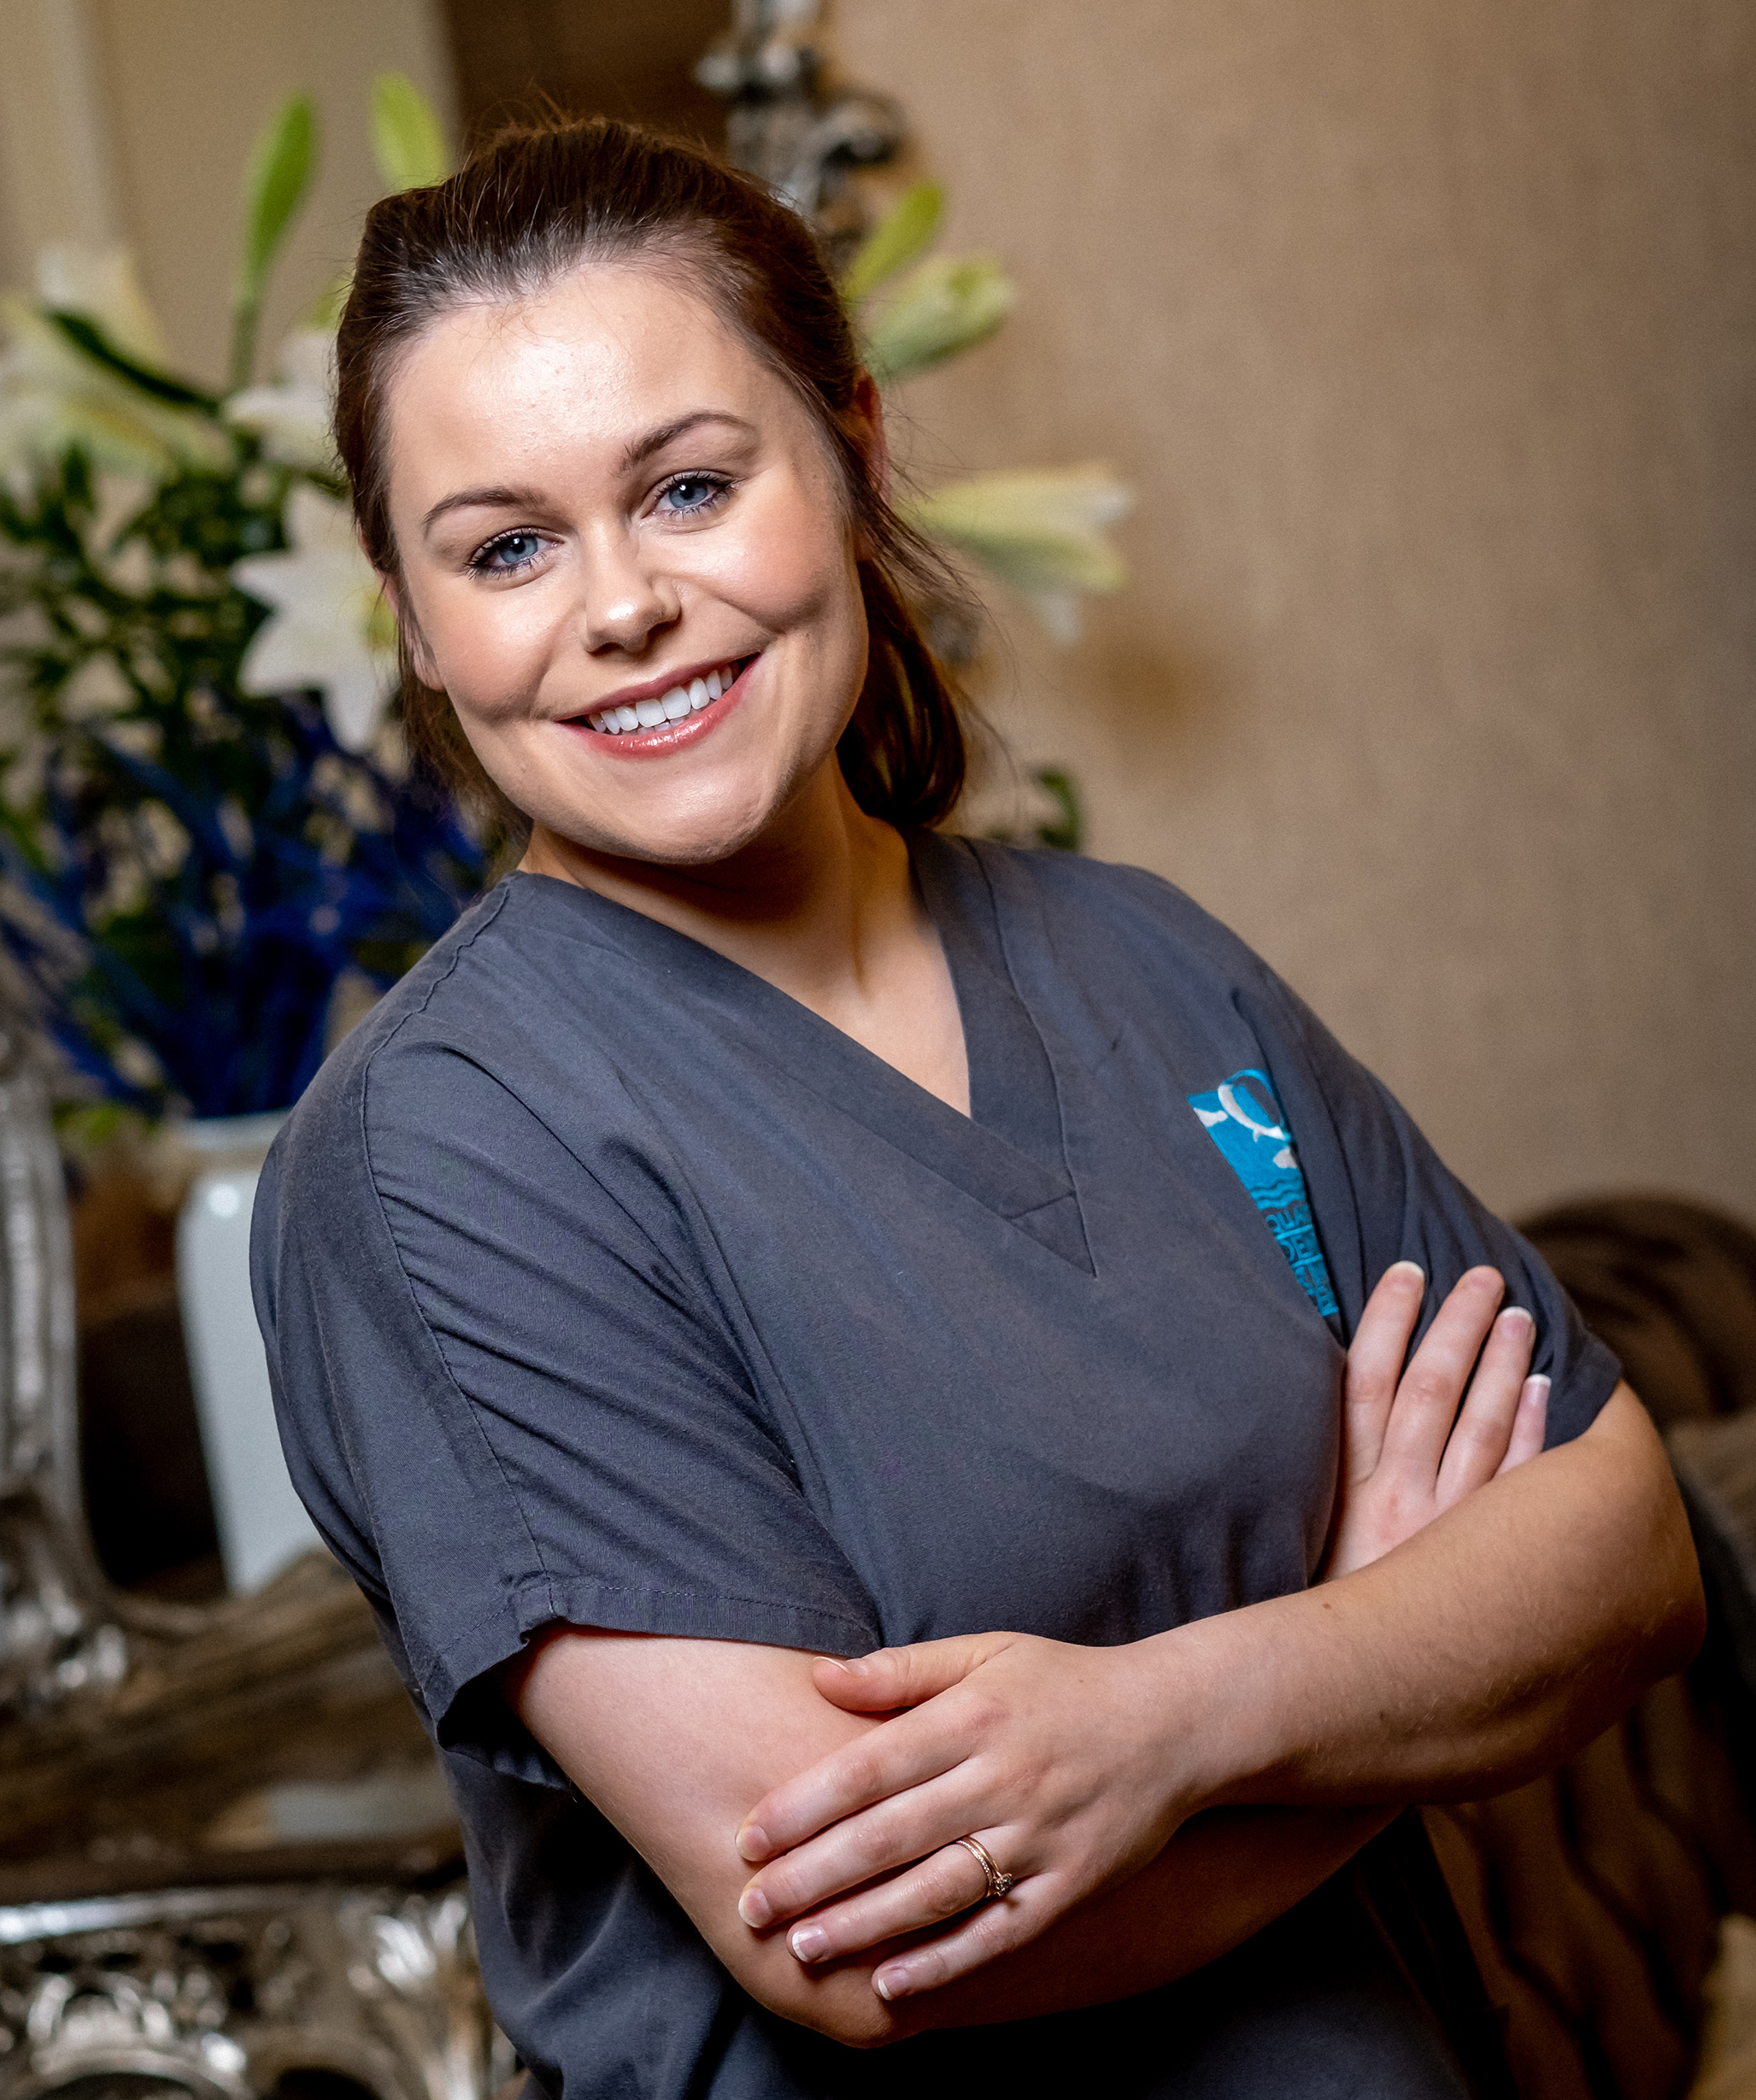 amanda quayside dental and implant centre derry